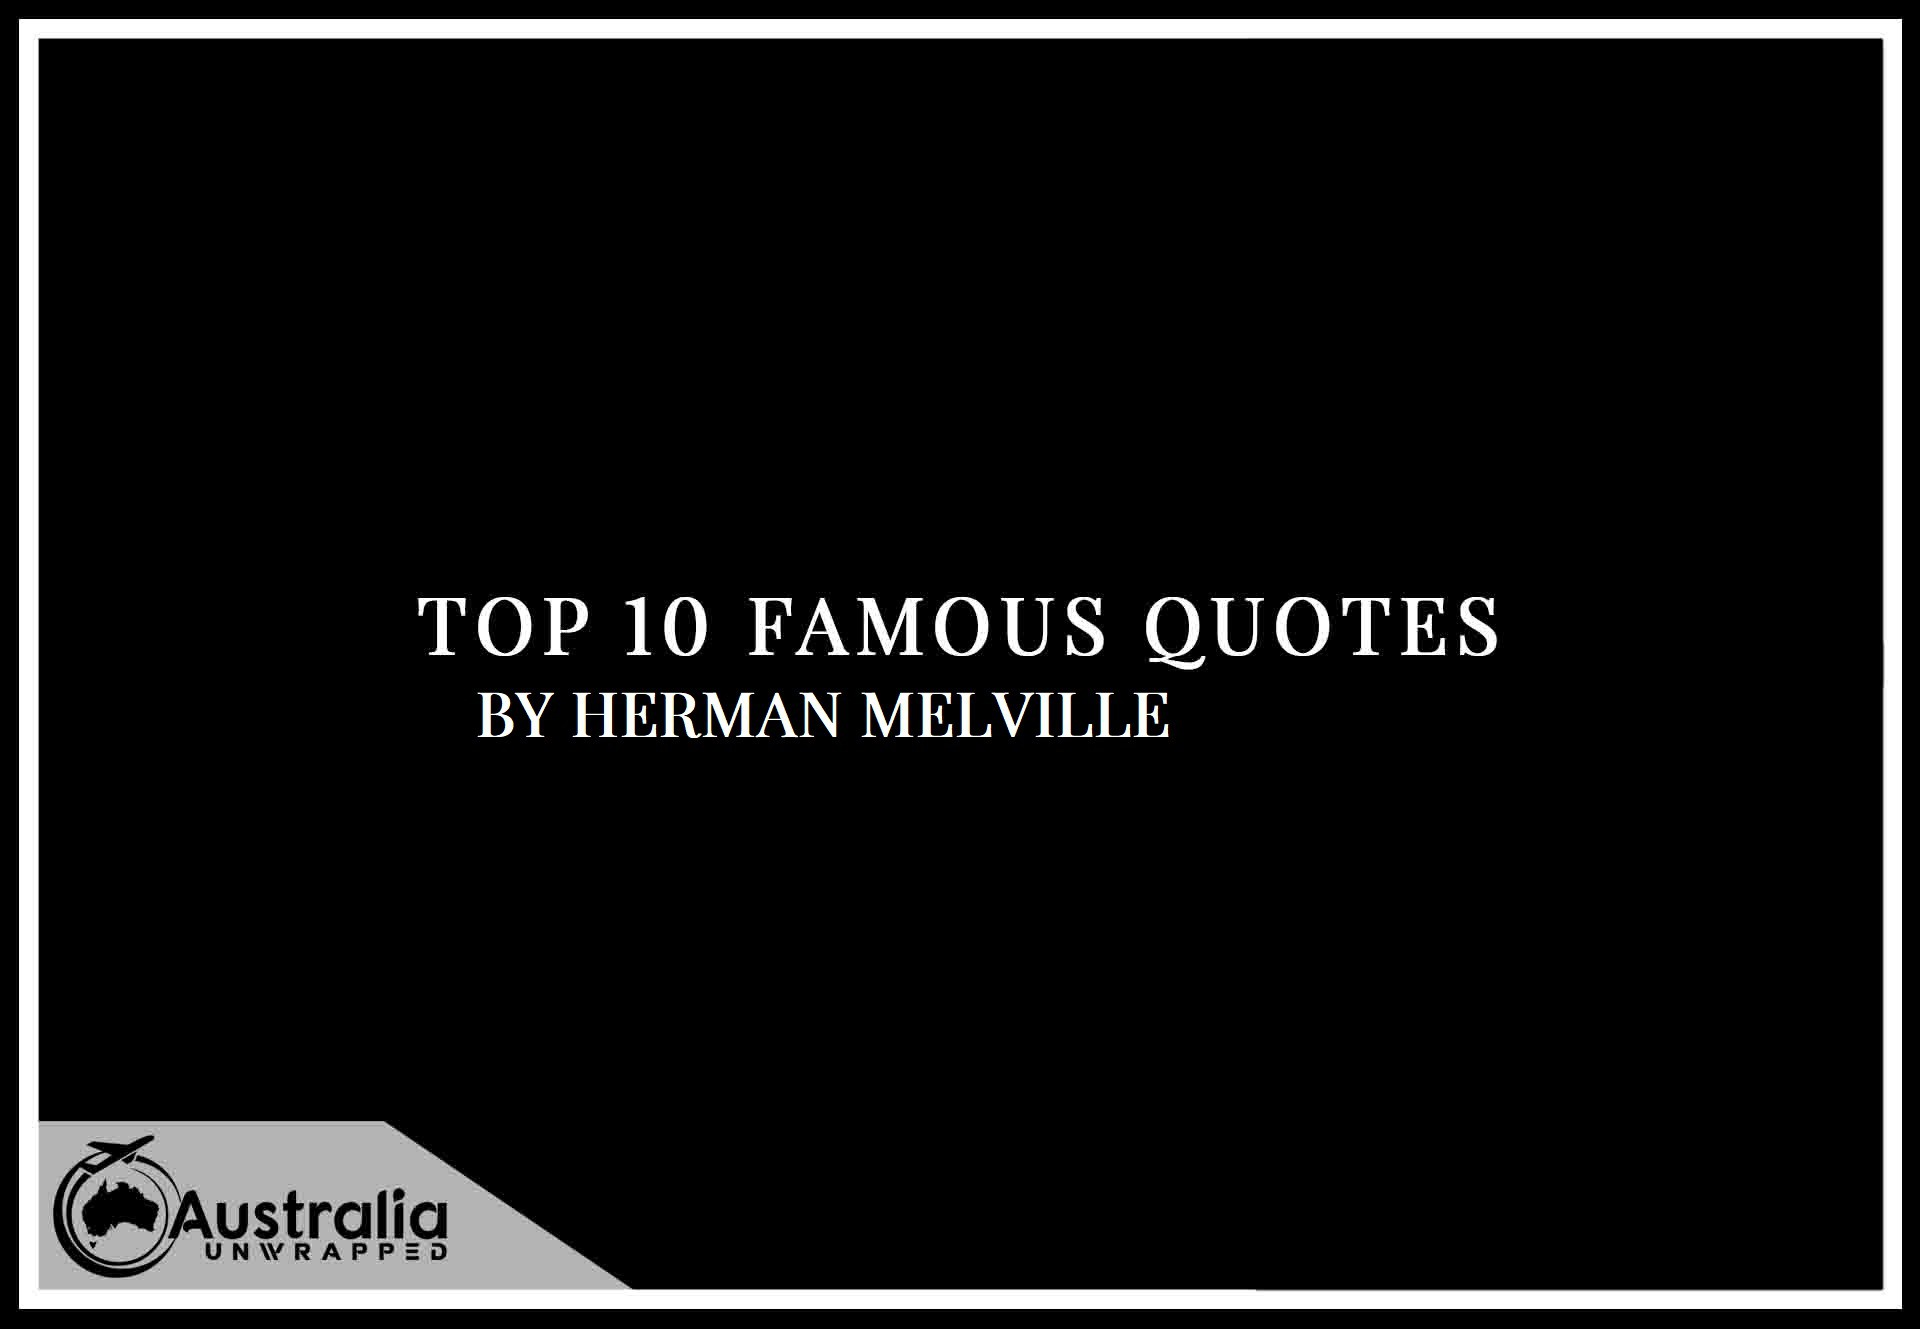 Top 10 Famous Quotes by Author Herman Melville